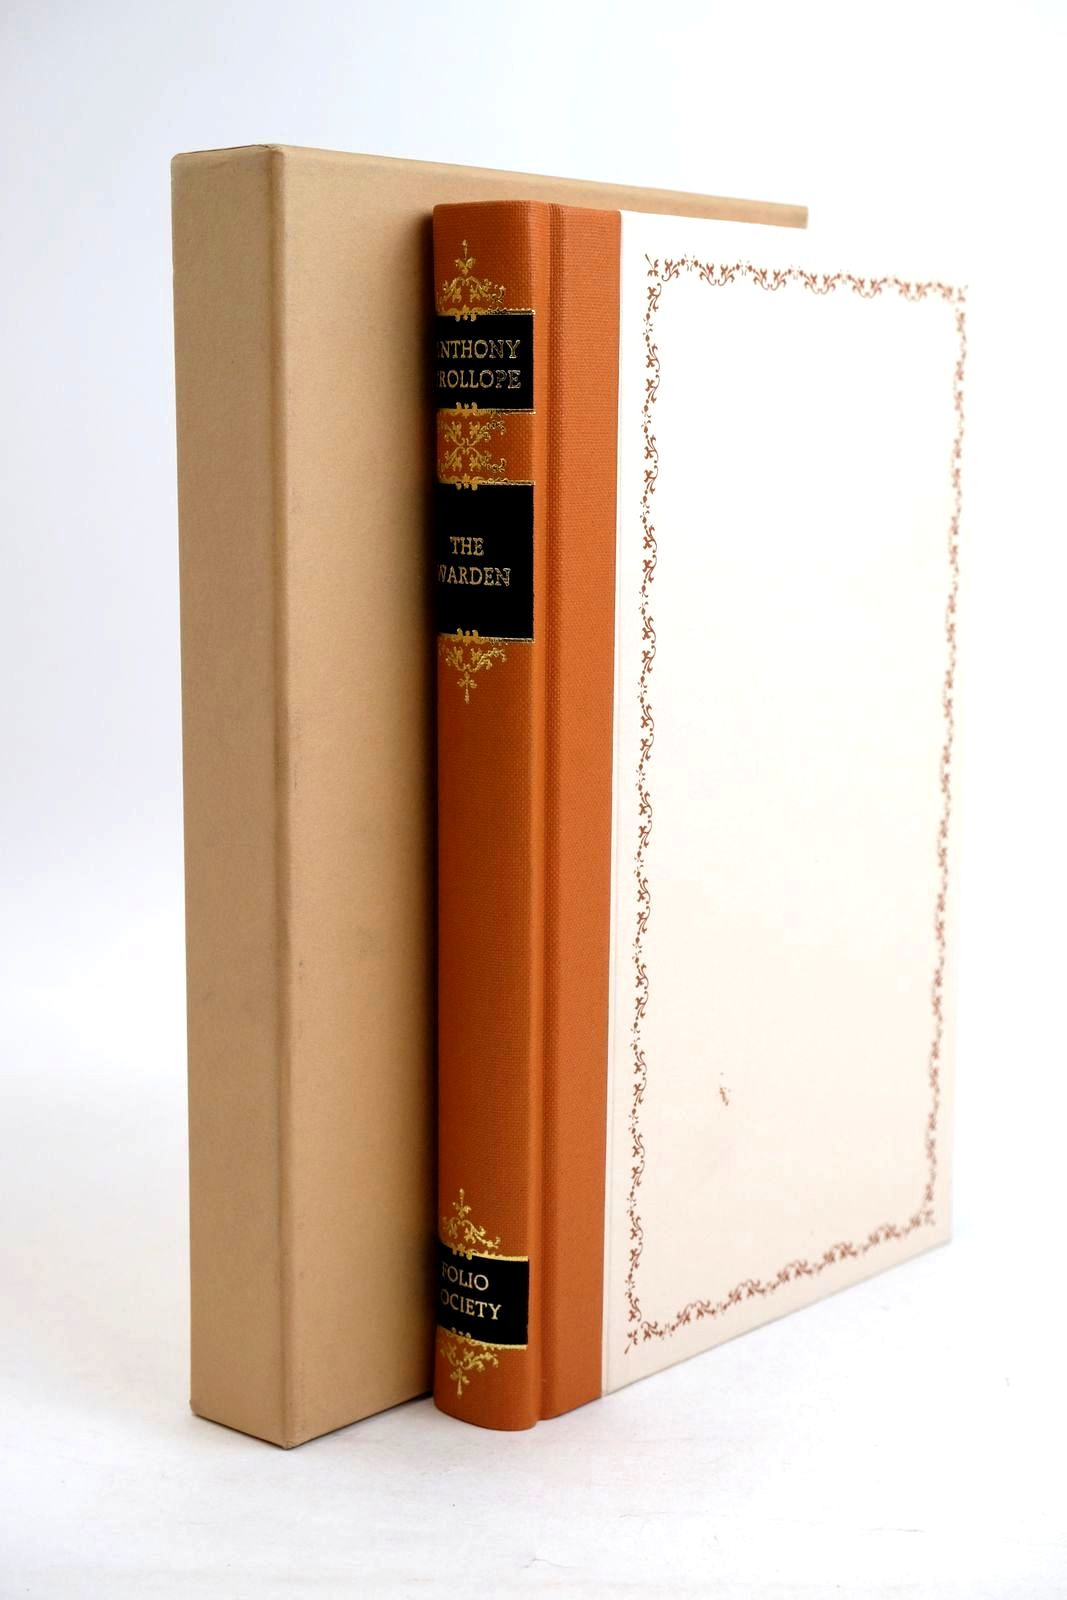 Photo of THE WARDEN written by Trollope, Anthony illustrated by Reddick, Peter published by Folio Society (STOCK CODE: 1320490)  for sale by Stella & Rose's Books